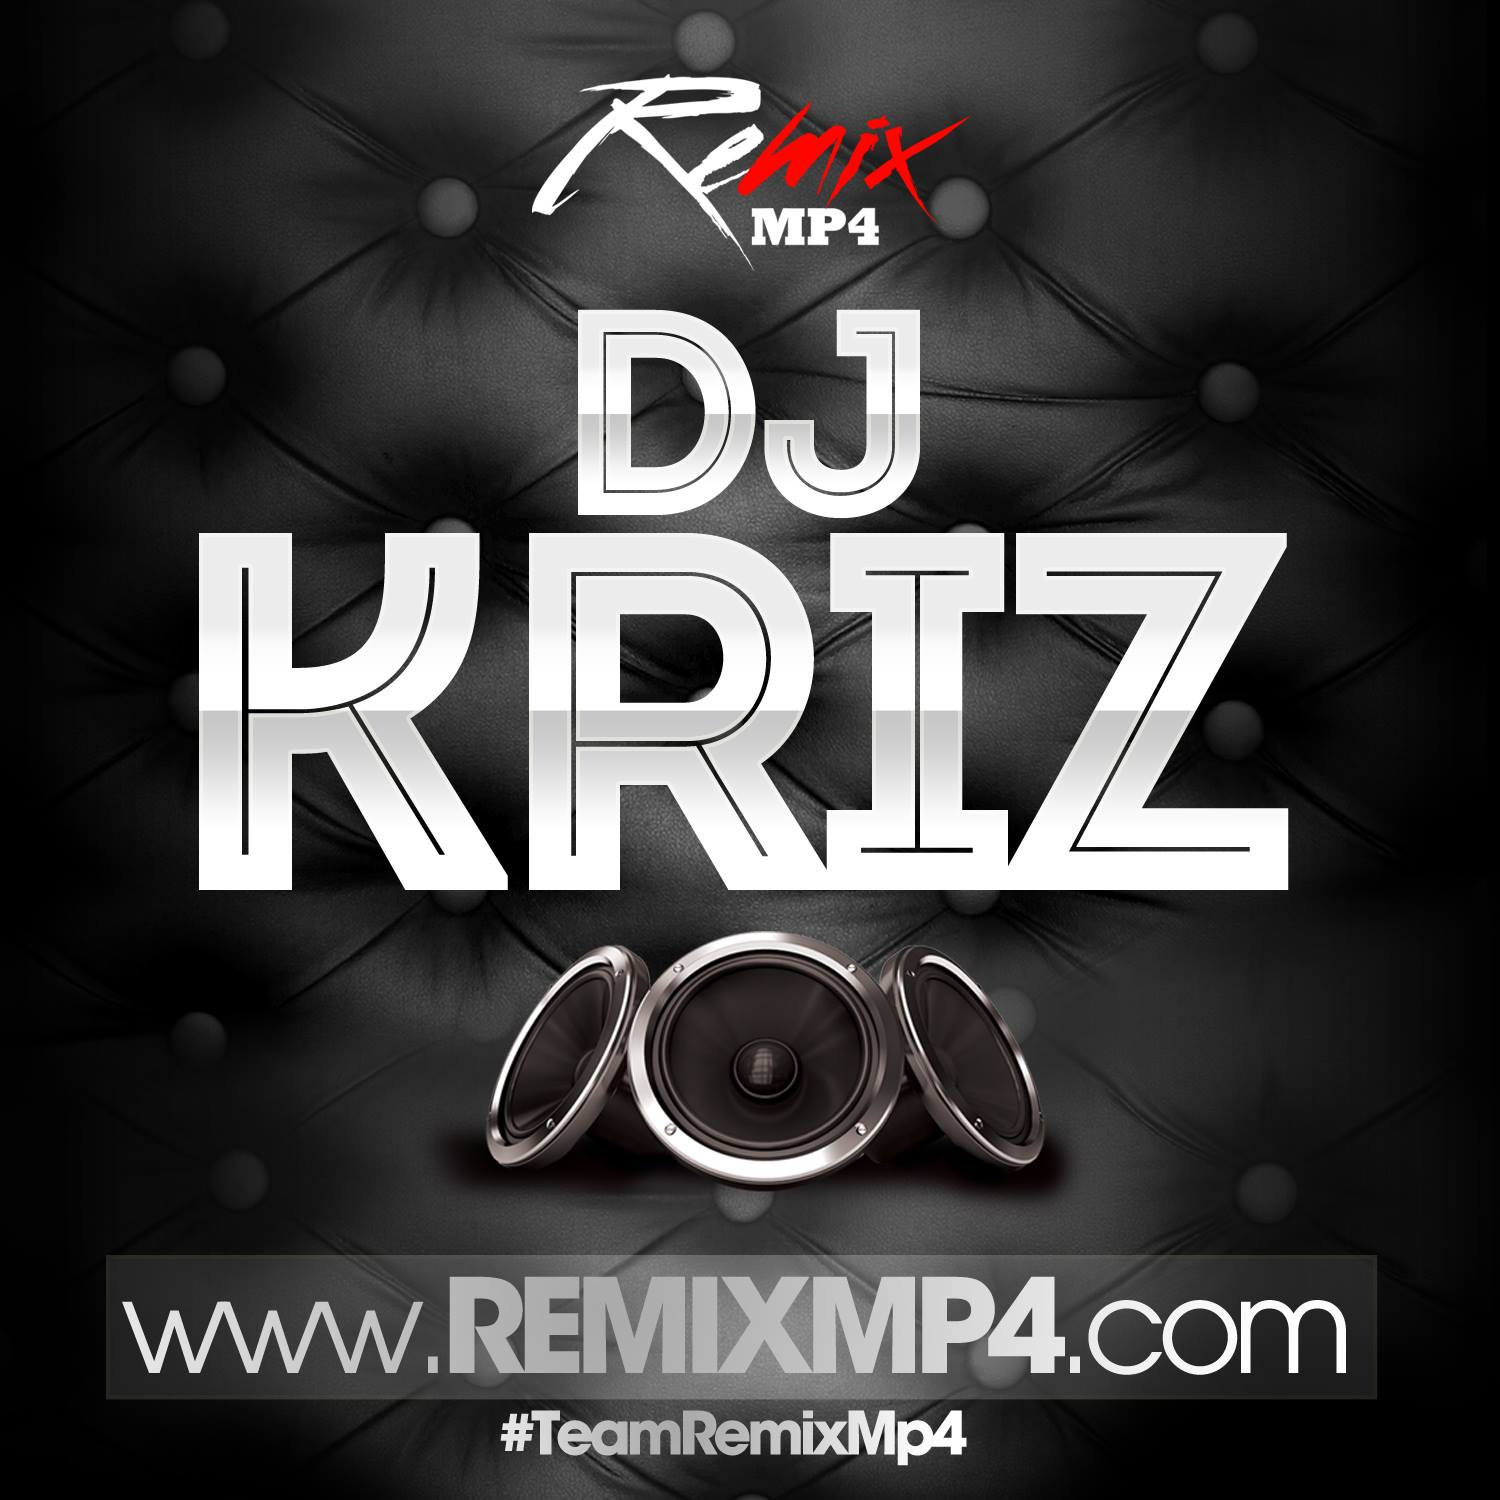 Rattle Mashup Edit [Dj Kriz]